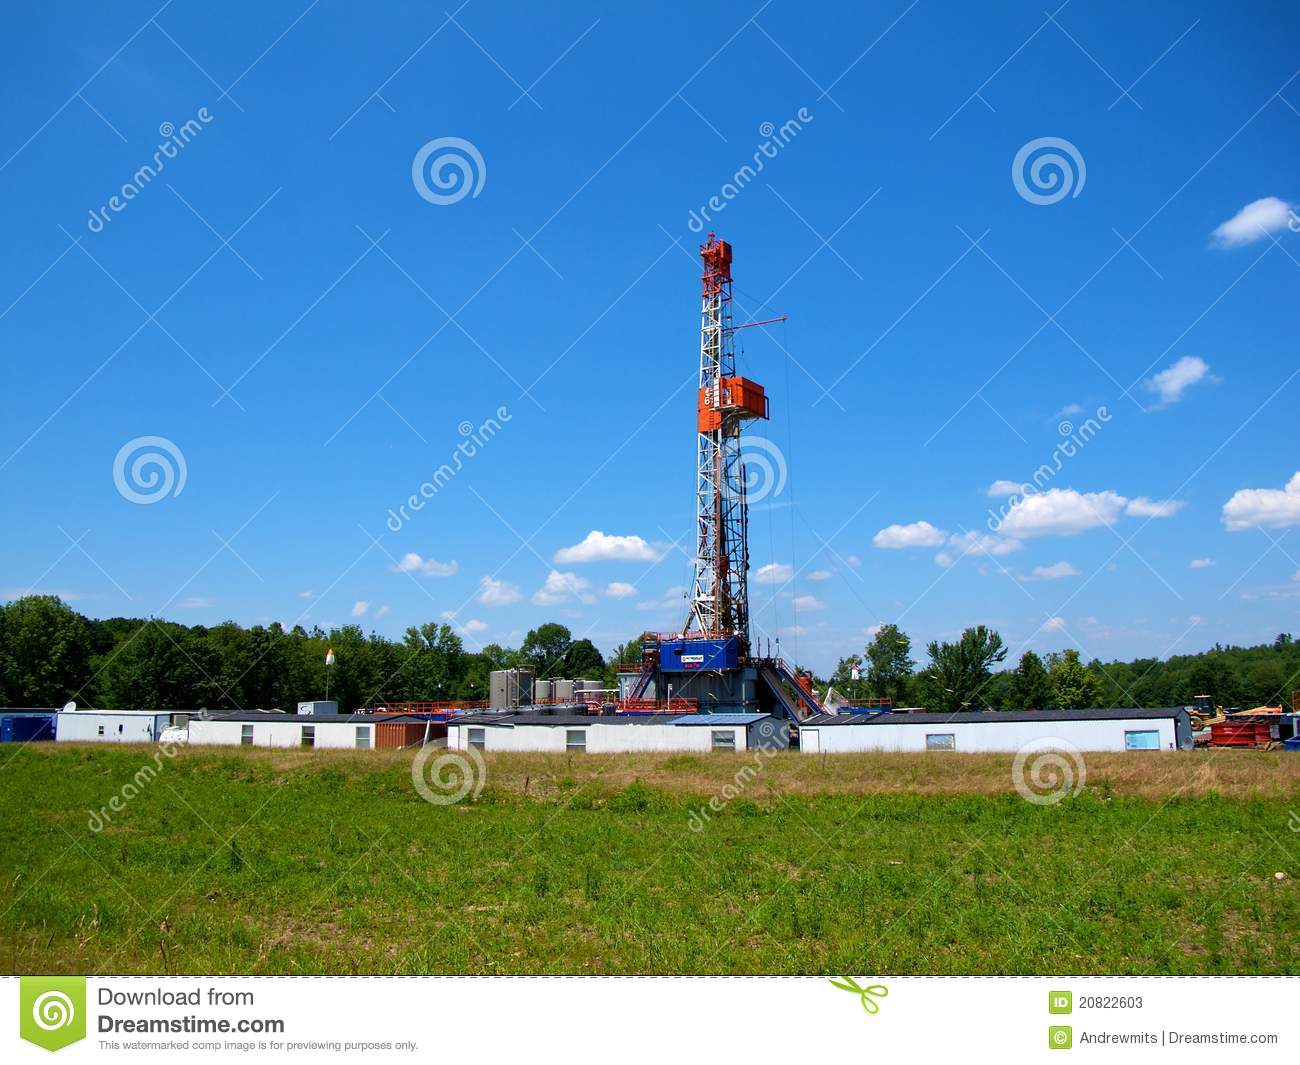 Natural Gas Drilling Worksite Stock Image - Image of well